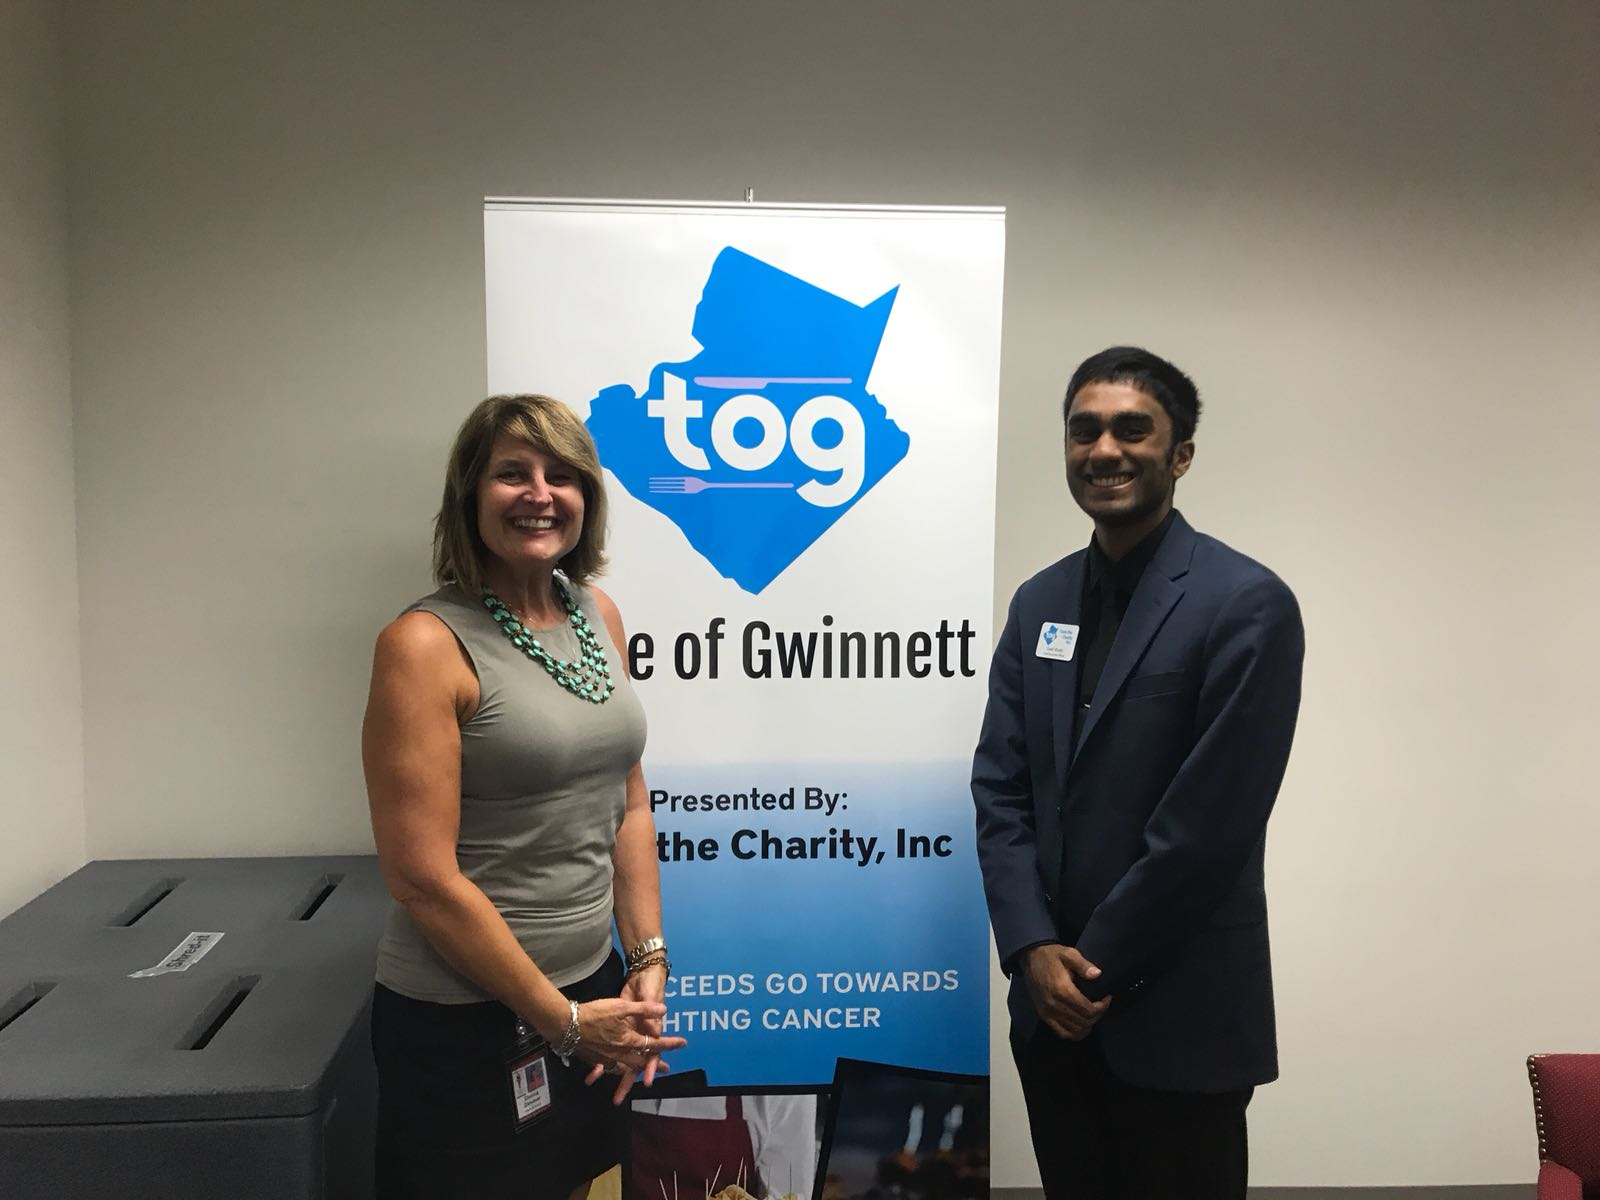 Meeting with Donna Zimmer and Aaron Lupuloff (Gwinnett County)